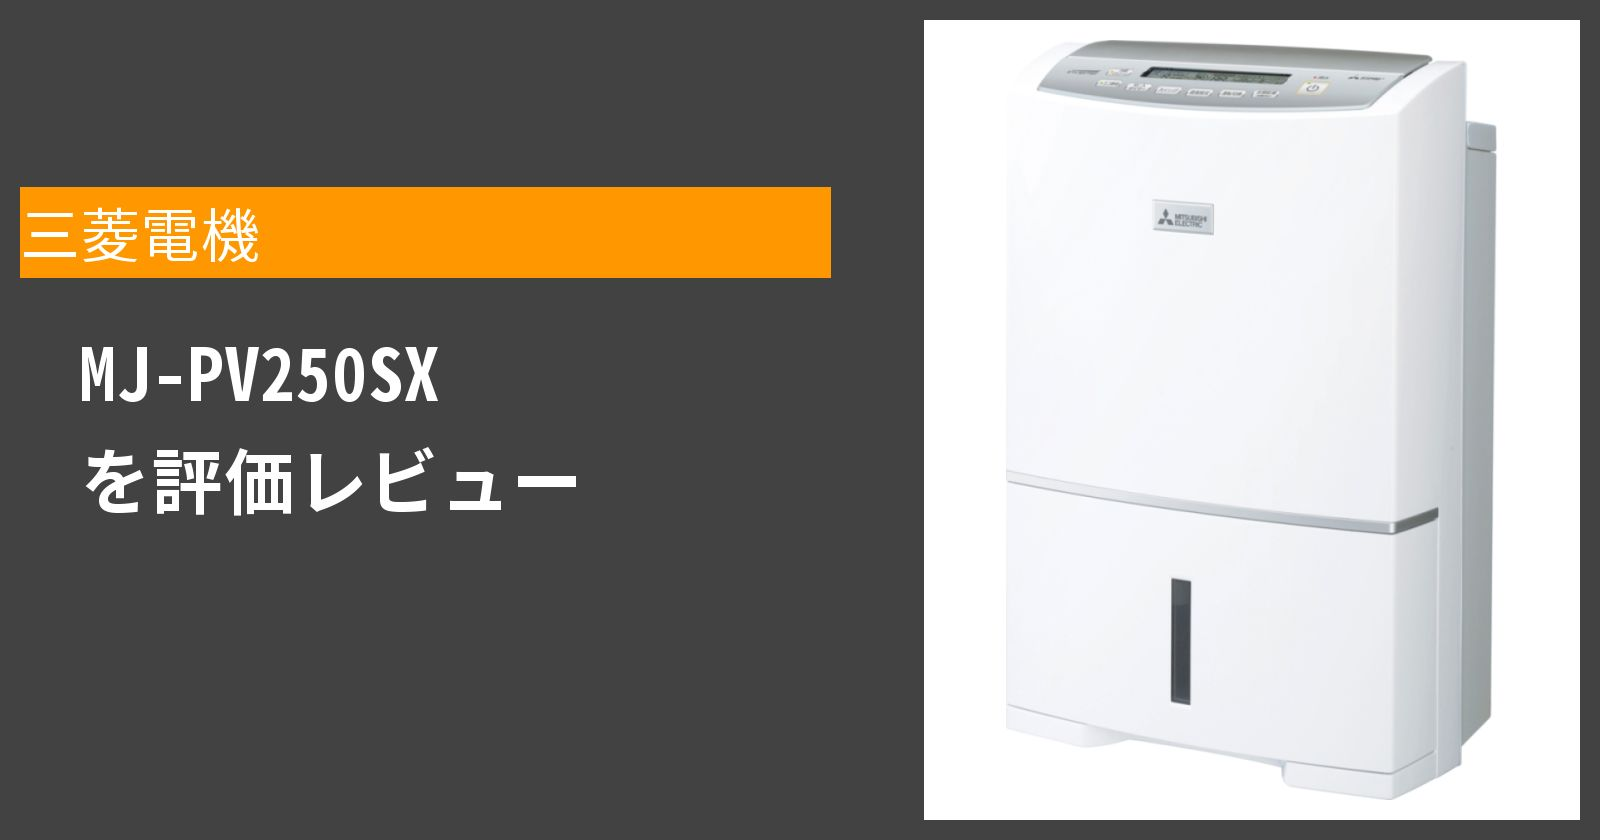 MJ-PV250SXを徹底評価